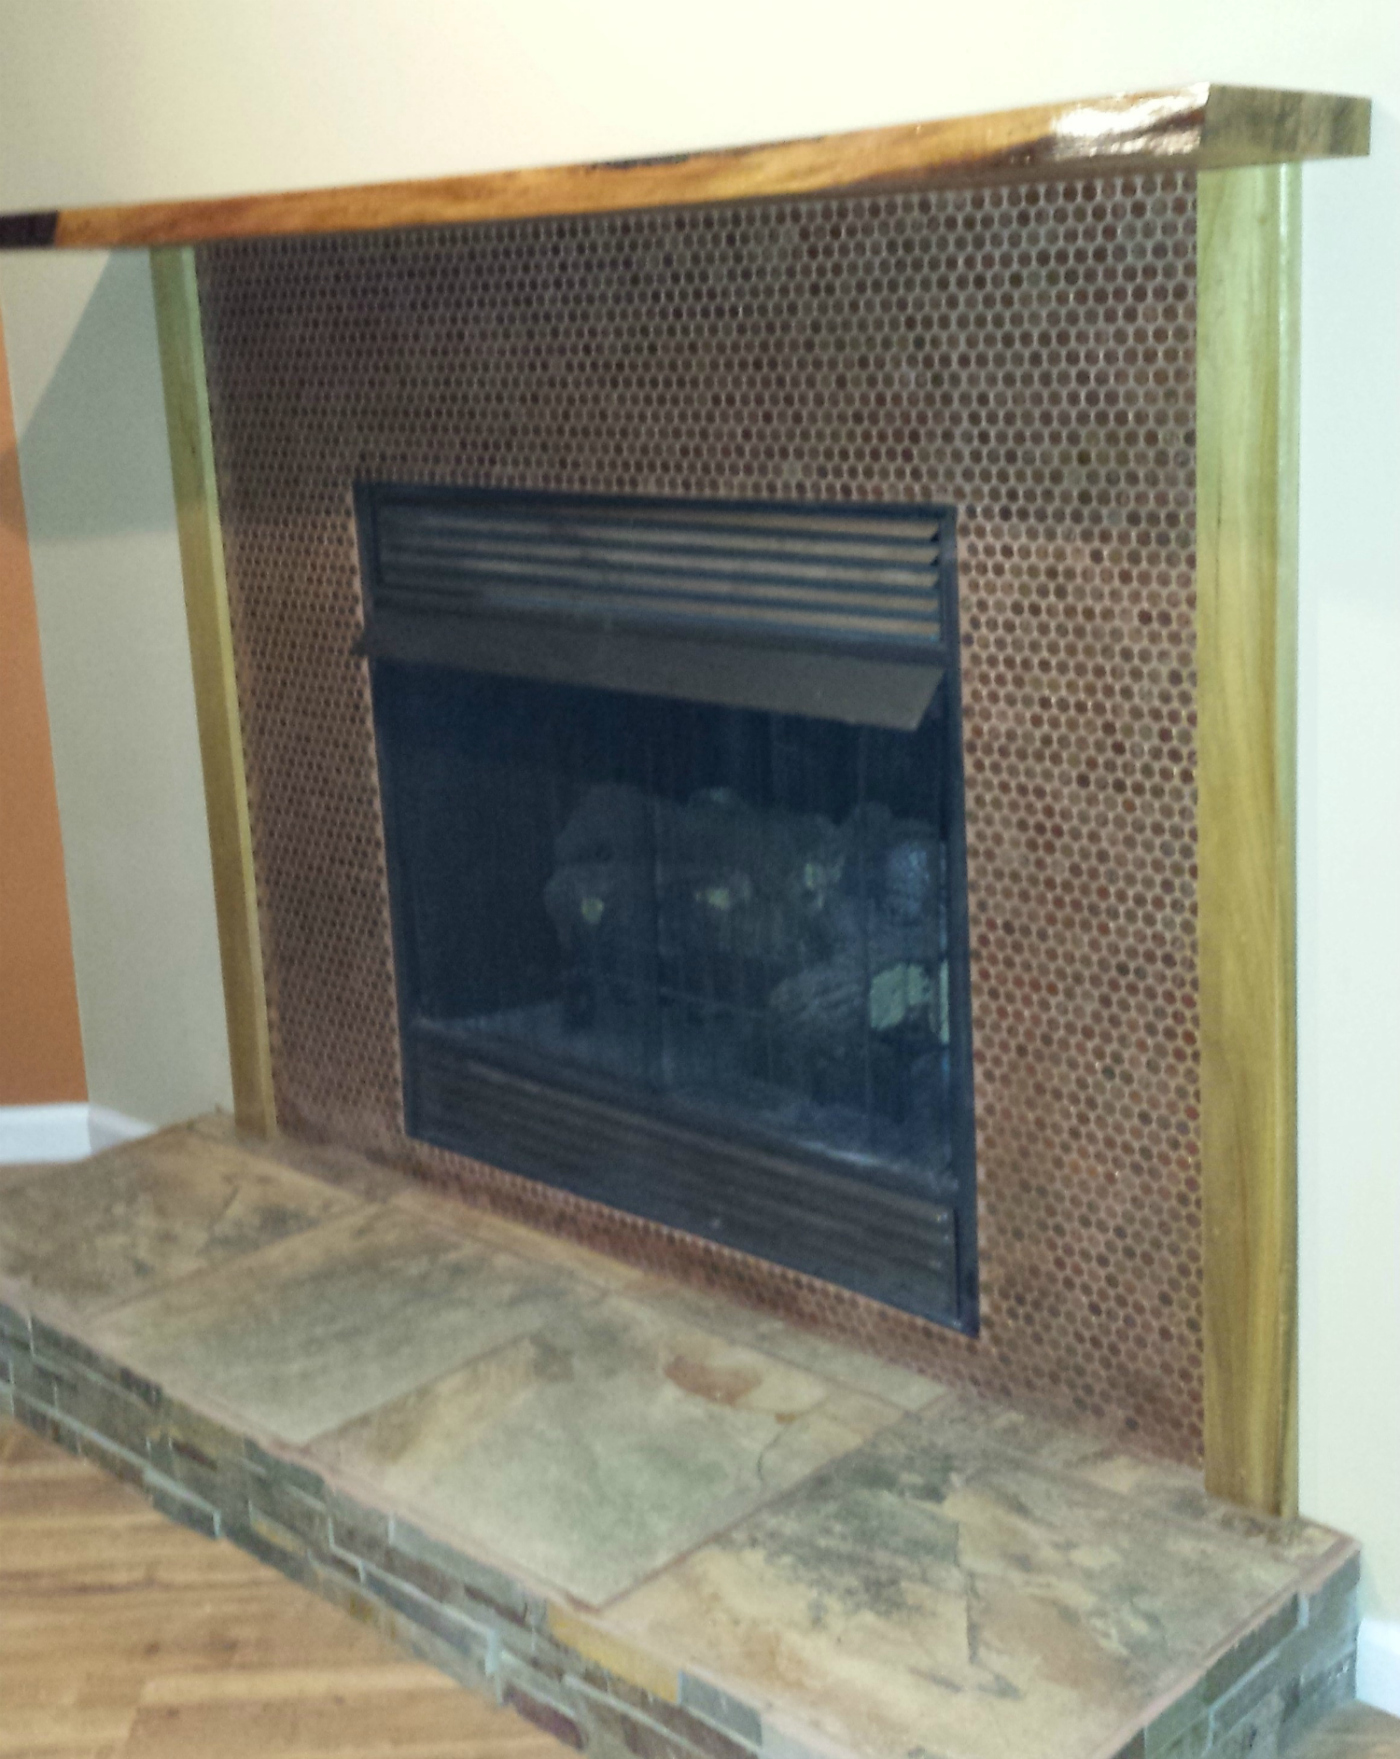 Fireplace wall covered with penny tile sheets (pennies).